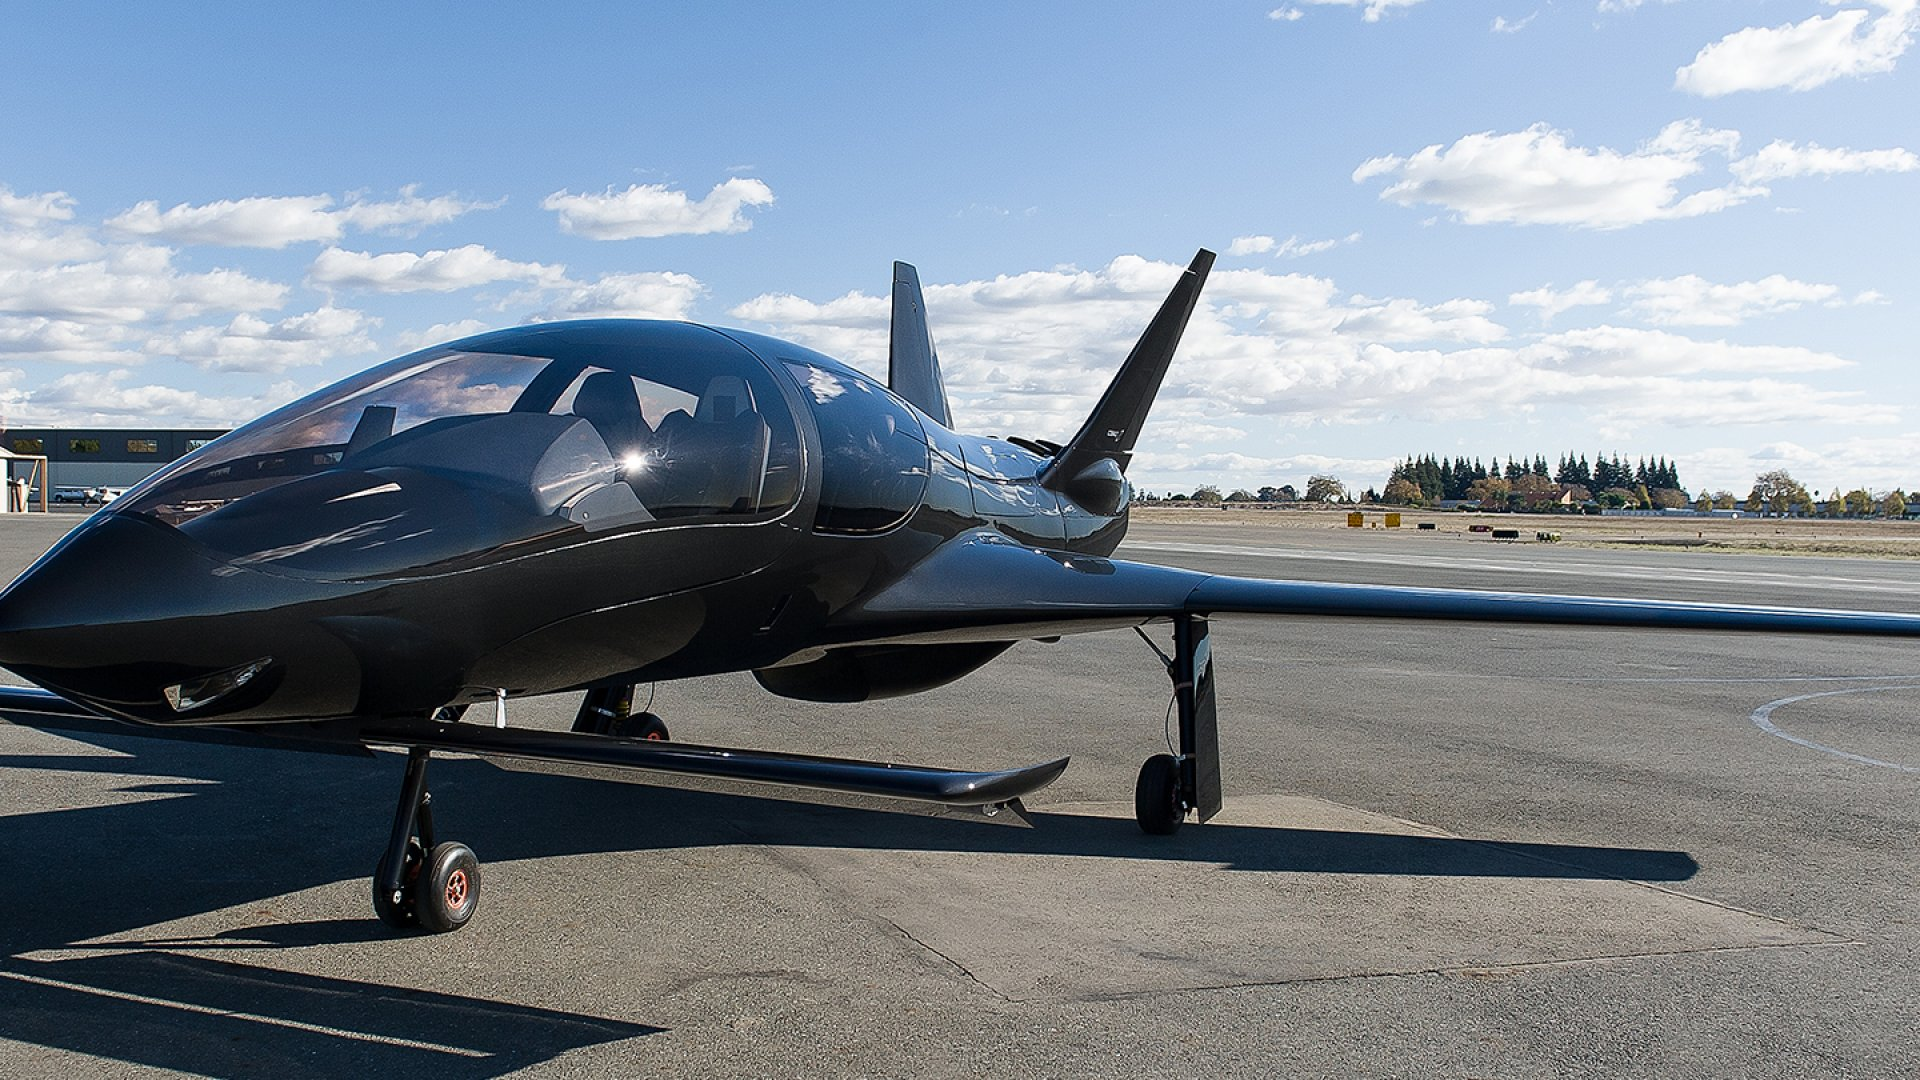 Cobalt, an aviation startup based in California, is taking orders for the Co50, which is supposed to be the fastest single piston engine aircraft ever made.